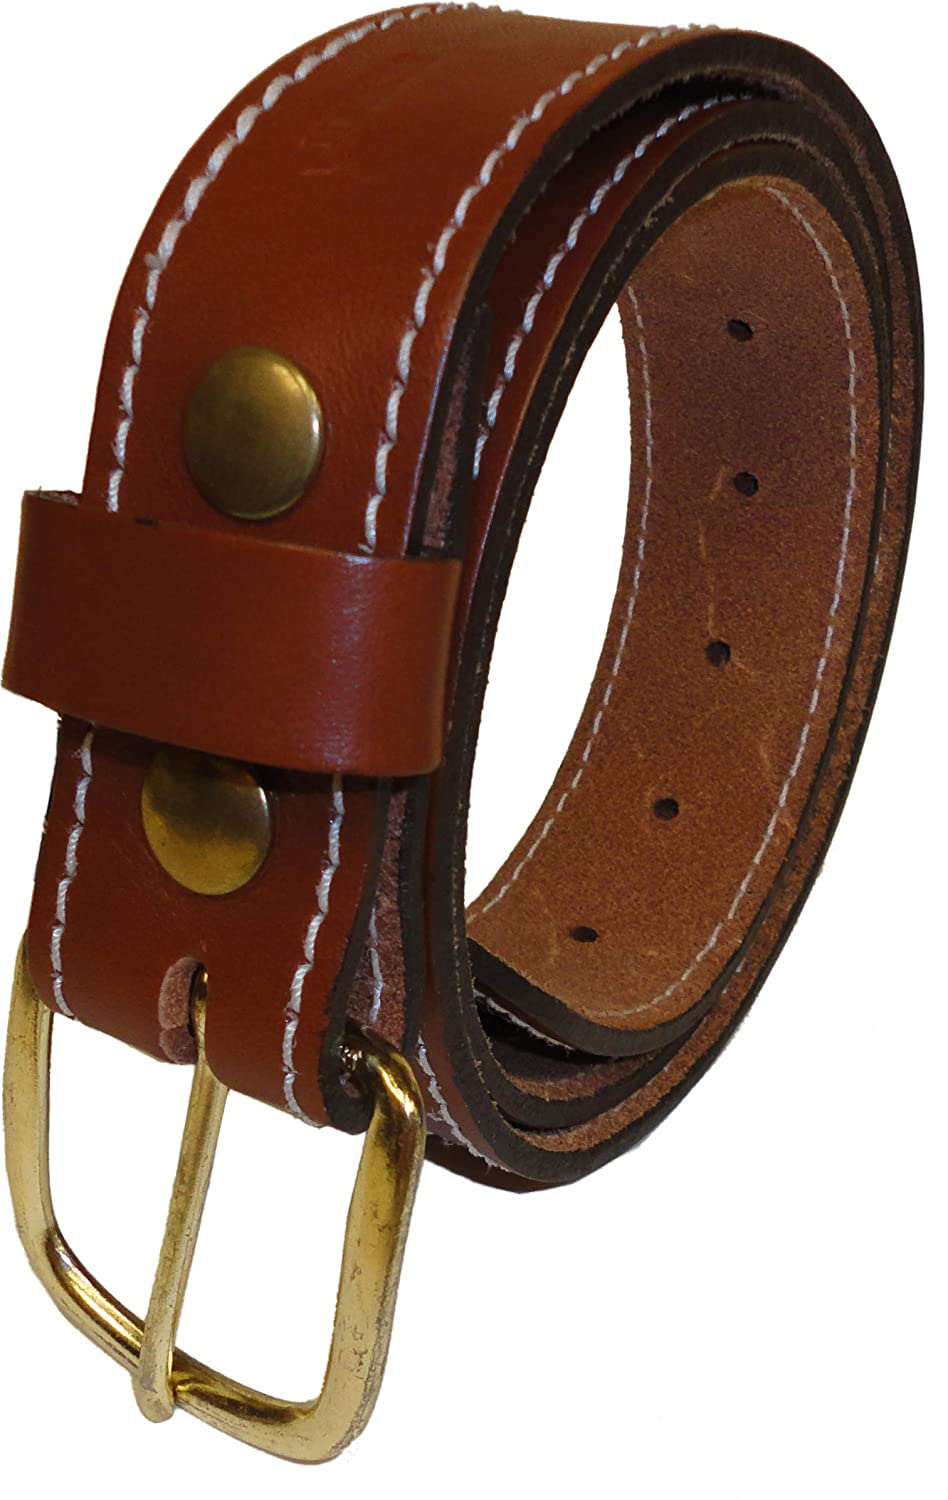 Made In The USA Men/'s Genuine Leather Belt Tan Heavy Duty Full Grain 1 /½ Wide With Snaps